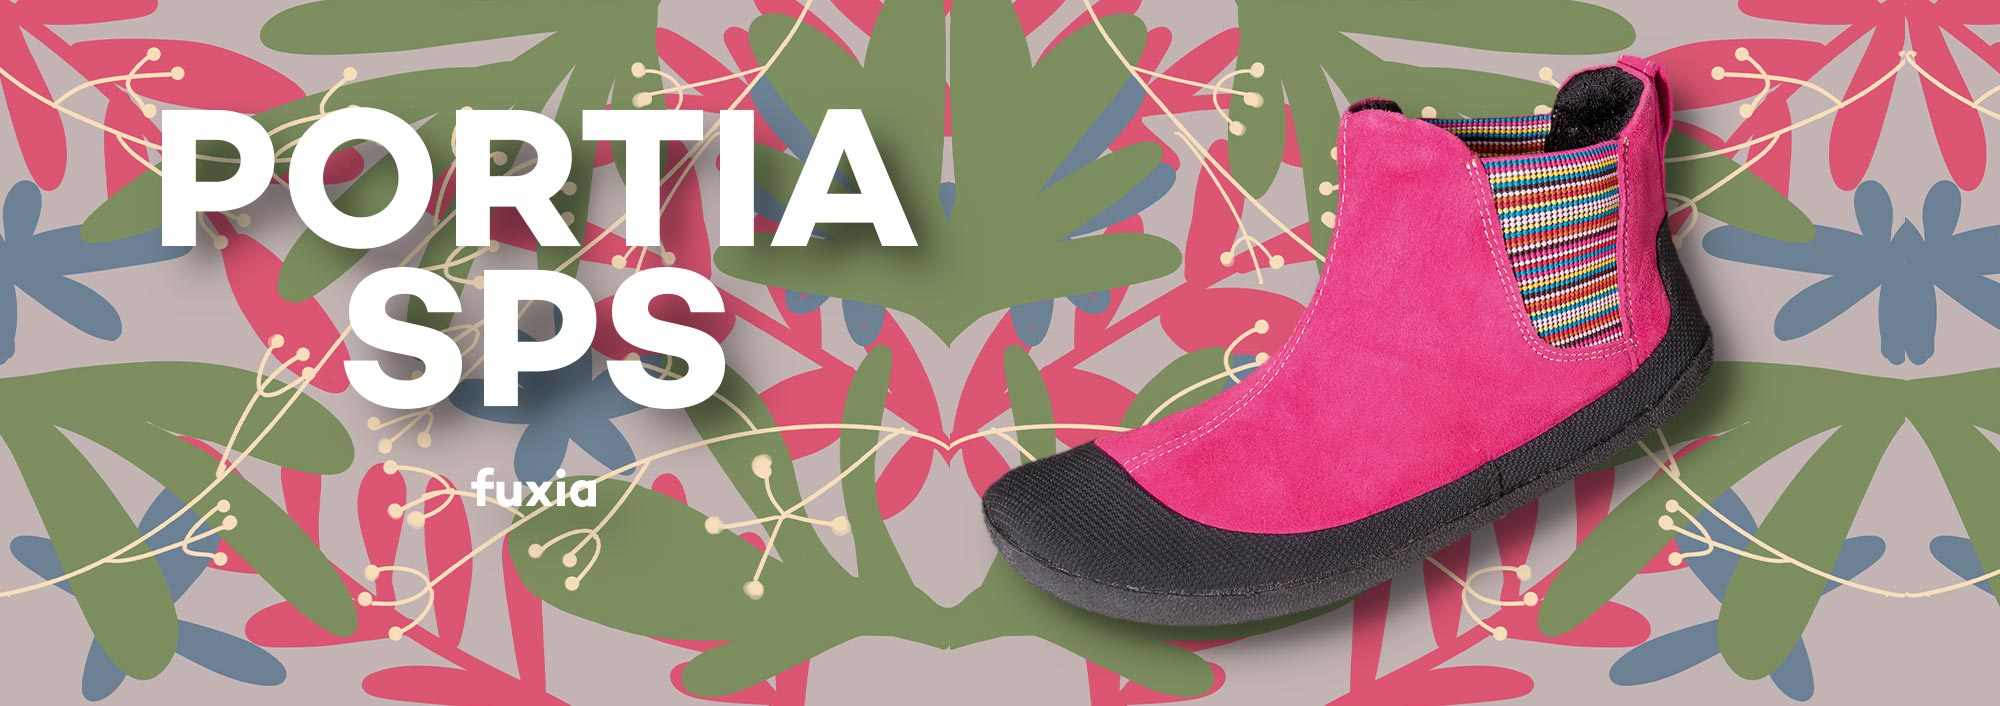 Sole Runner Portia Fuxia